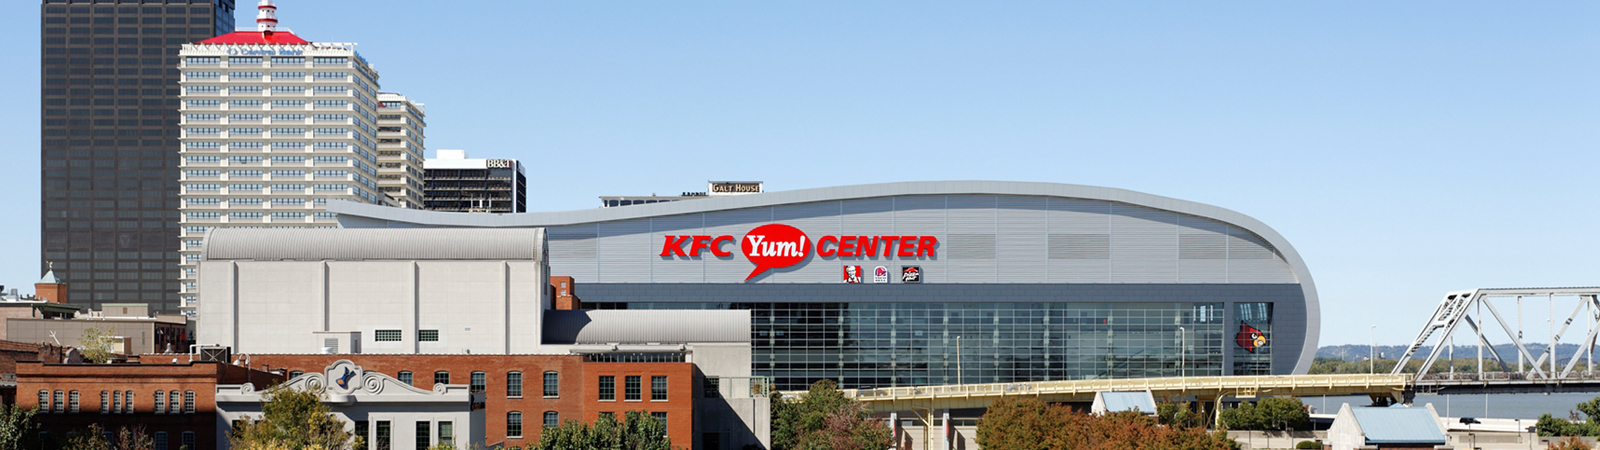 louisville-yum-center